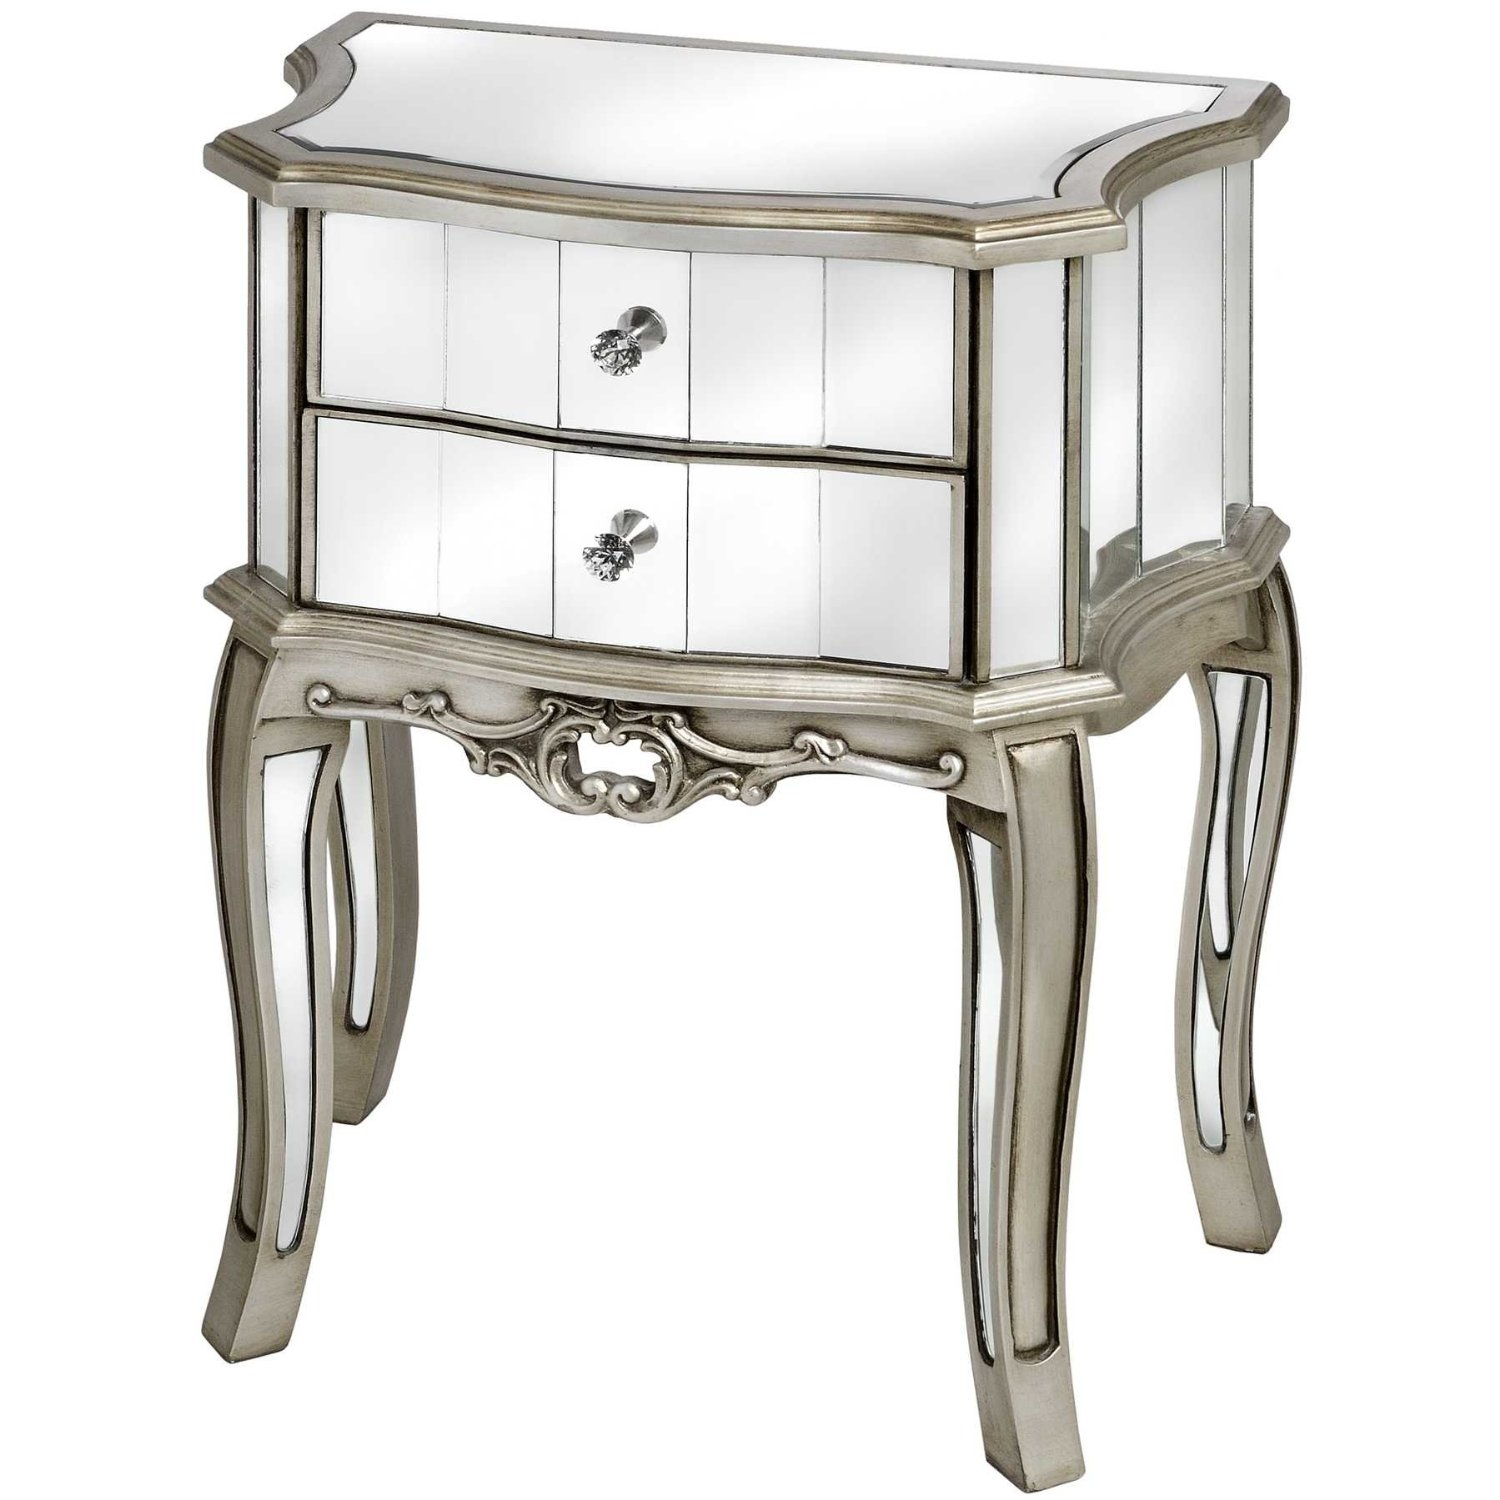 Venetian Mirrored Bedroom Furniture Raya Furniture Pertaining To Venetian Mirror Table (Image 12 of 15)